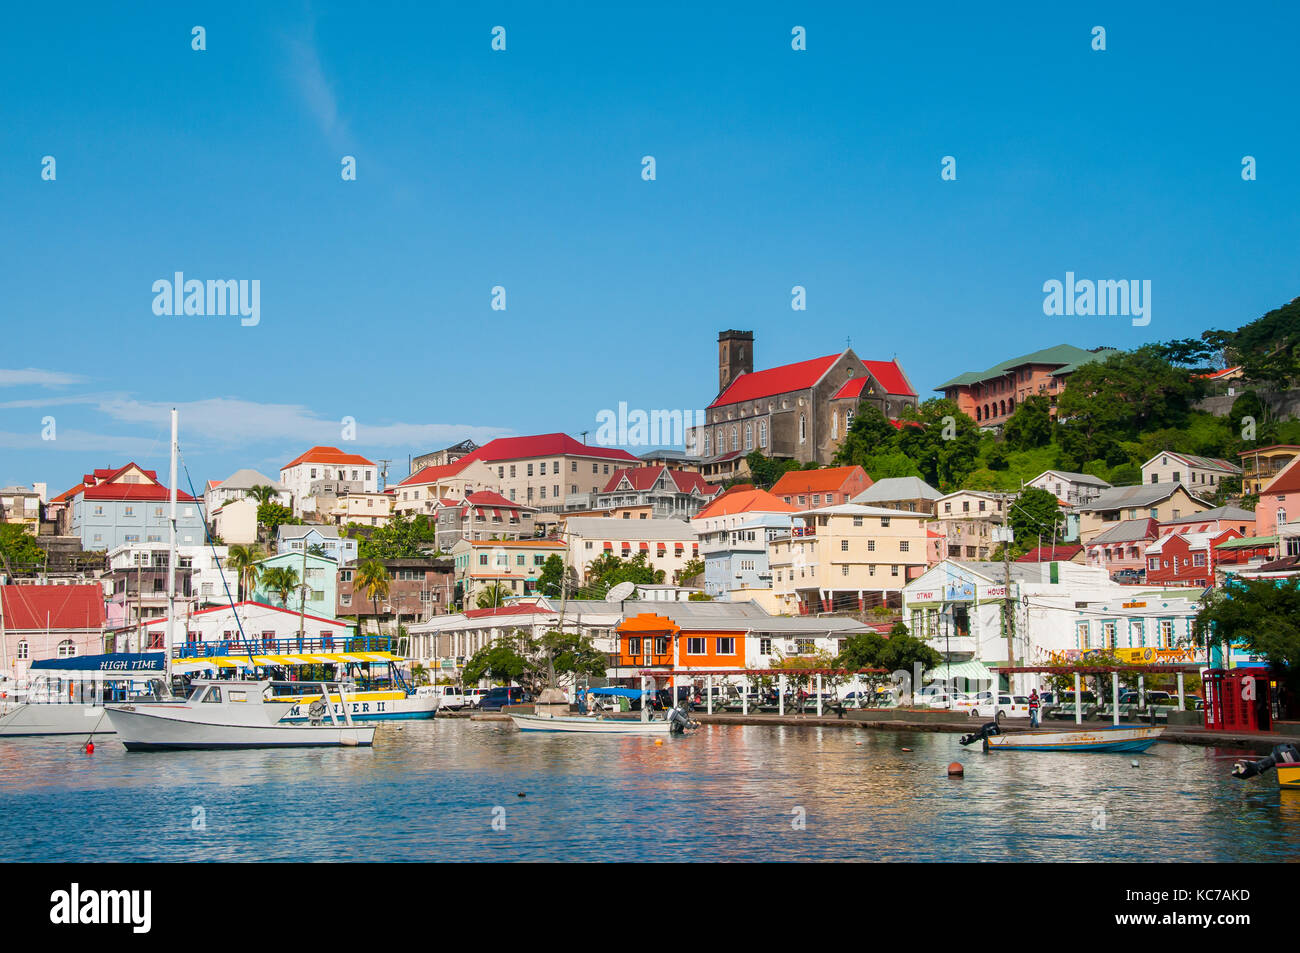 St. George's Grenada is the capital city built on the side of an old vlocano around a horseshoe shaped harbor - Stock Image